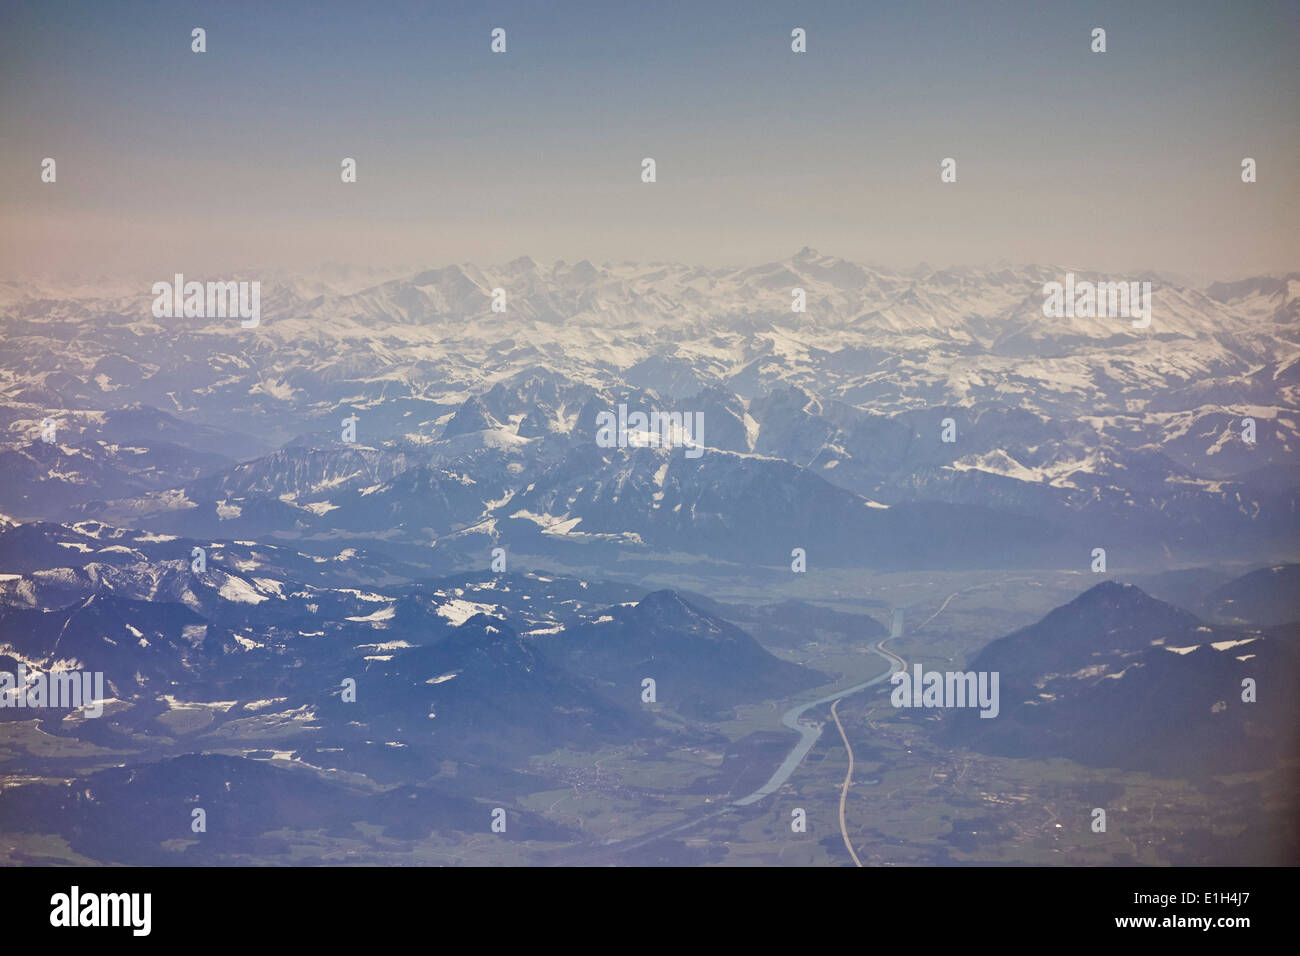 Birdseye view of German Alps, South Munich, Germany - Stock Image